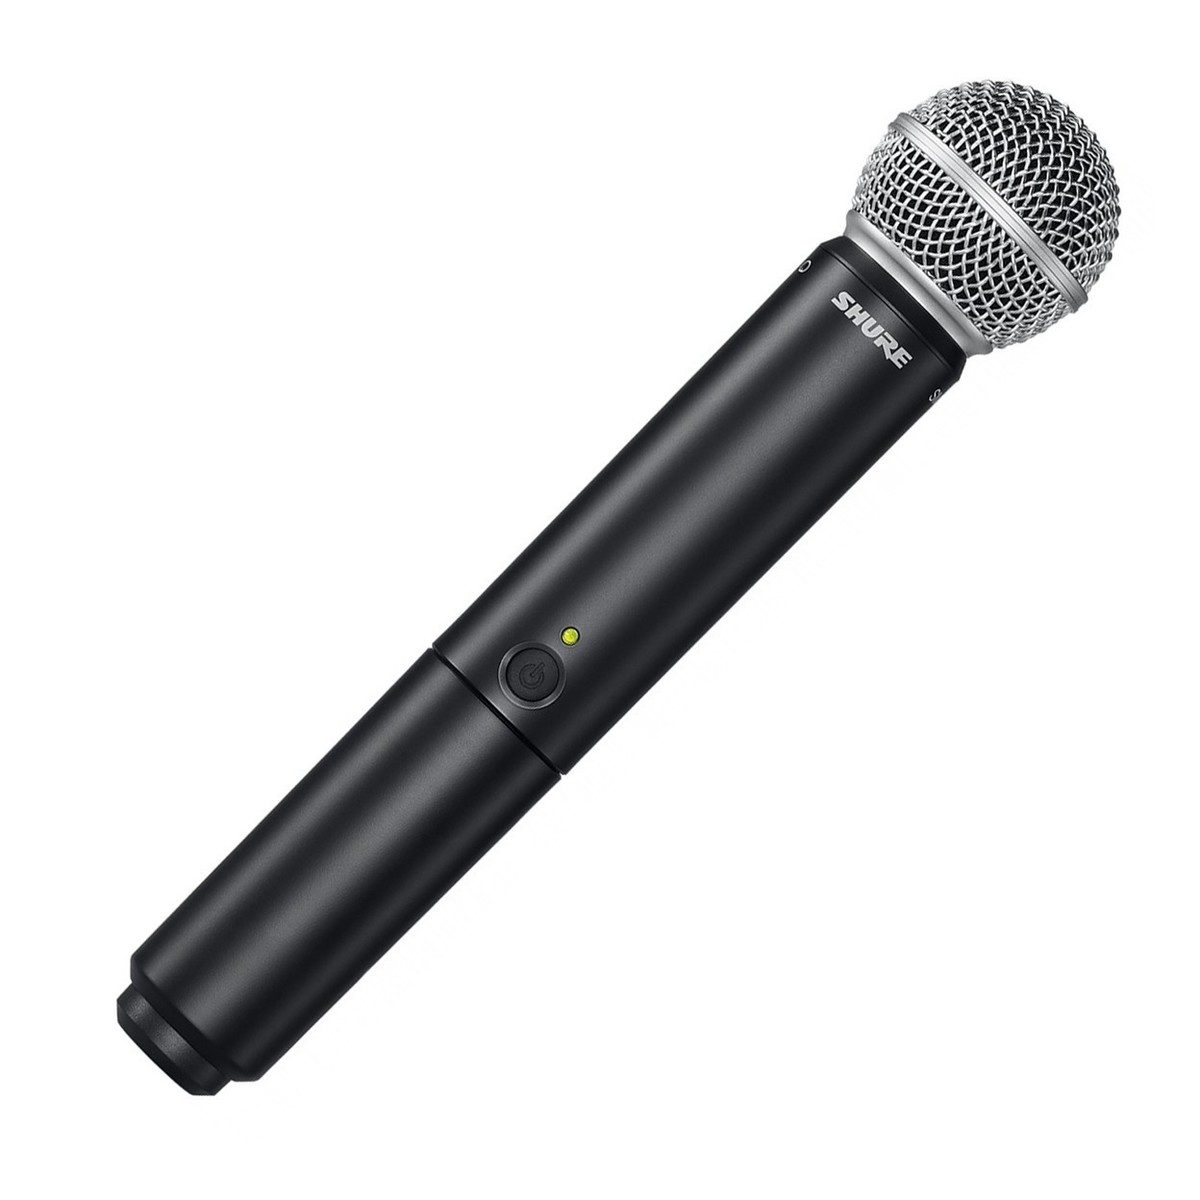 shure blx2 sm58 s8 wireless handheld microphone transmitter at gear4music. Black Bedroom Furniture Sets. Home Design Ideas